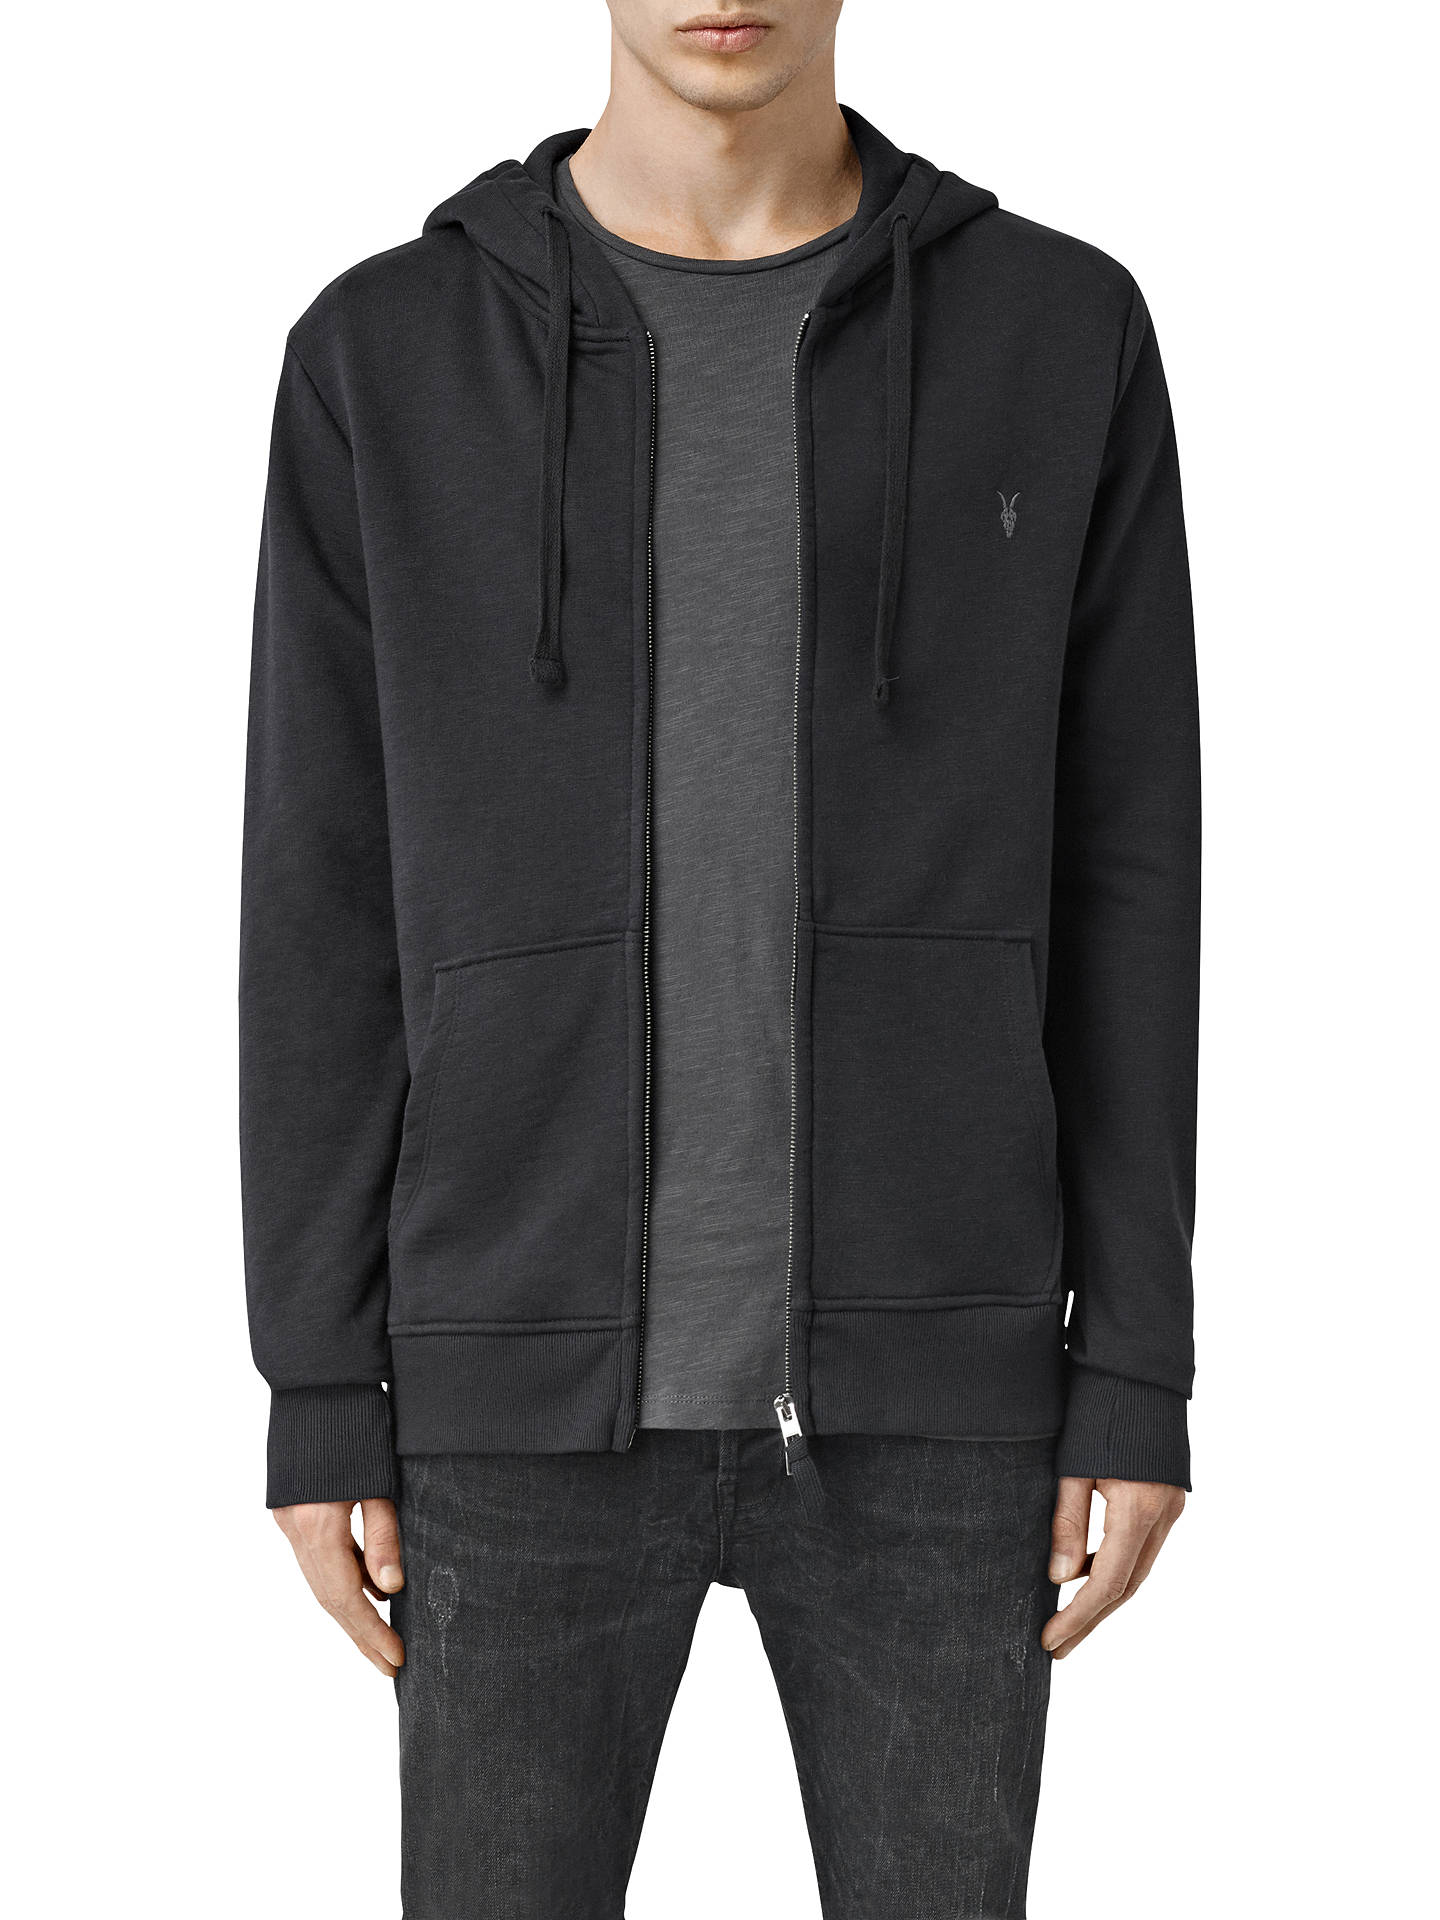 competitive price bd07a 88c08 AllSaints Wilde Full Zip Hoodie at John Lewis & Partners